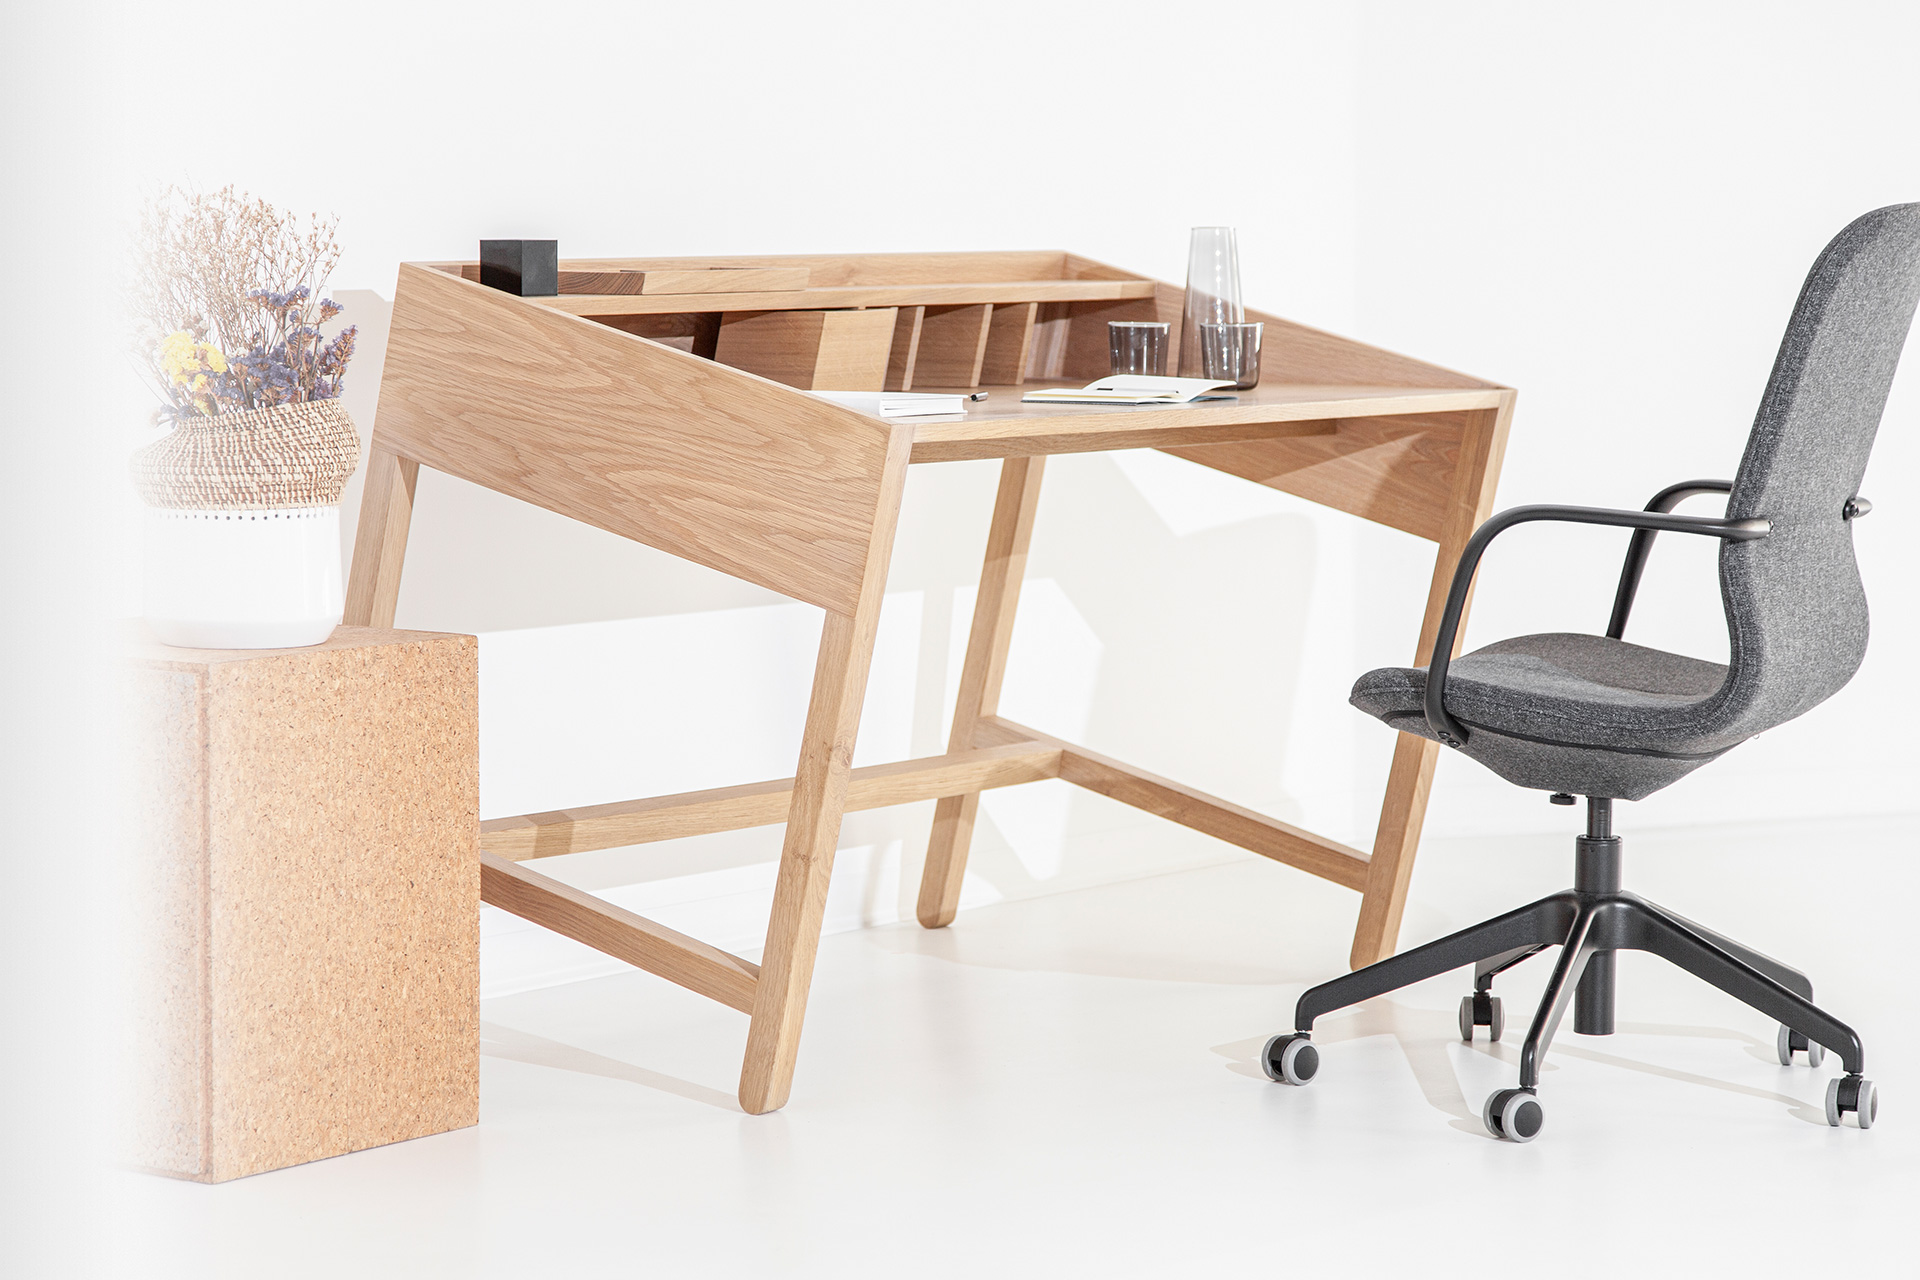 Torta Desk With Chair - DESIGN BY MIGUEL SOEIRO